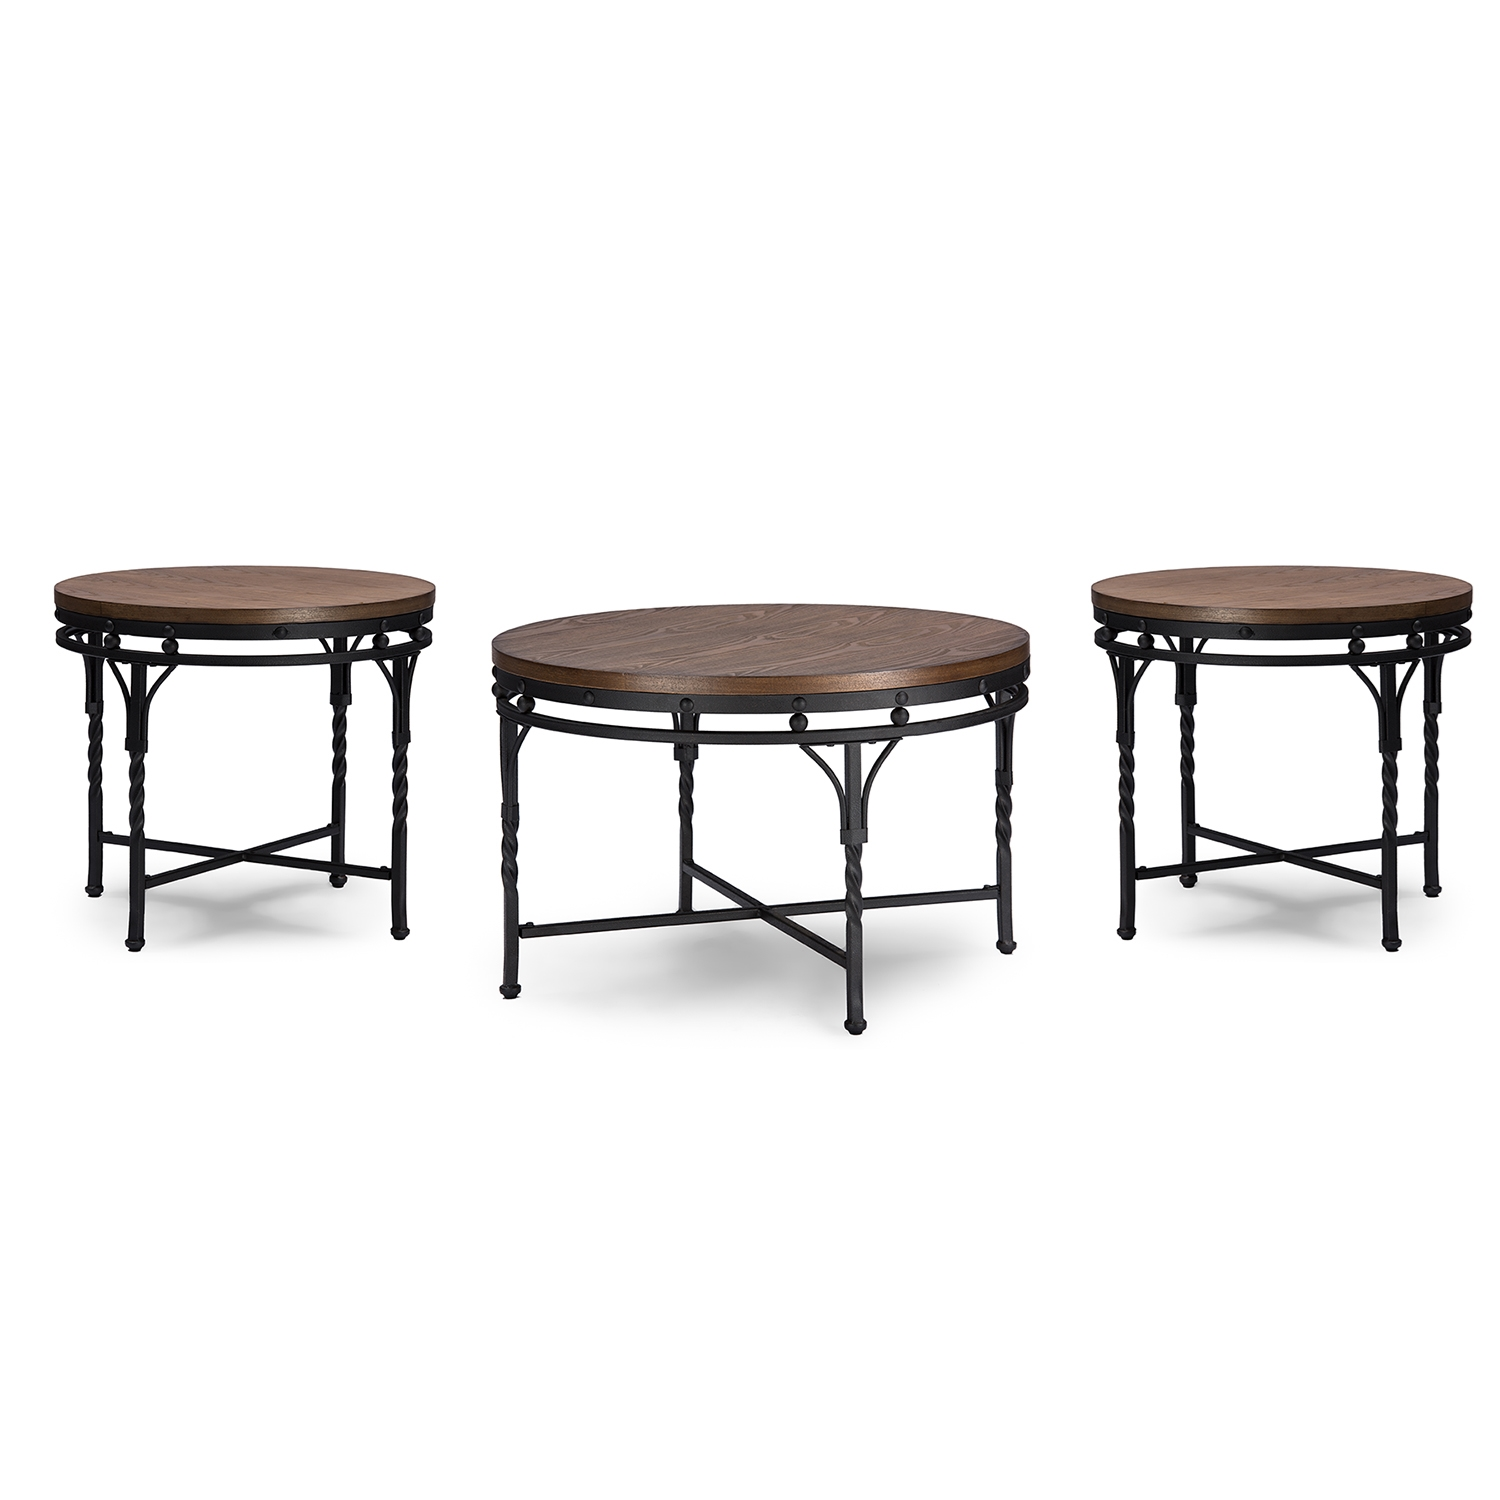 baxton studio austin vintage industrial antique bronze round coffee cocktail table and end tables 3piece occasional table set